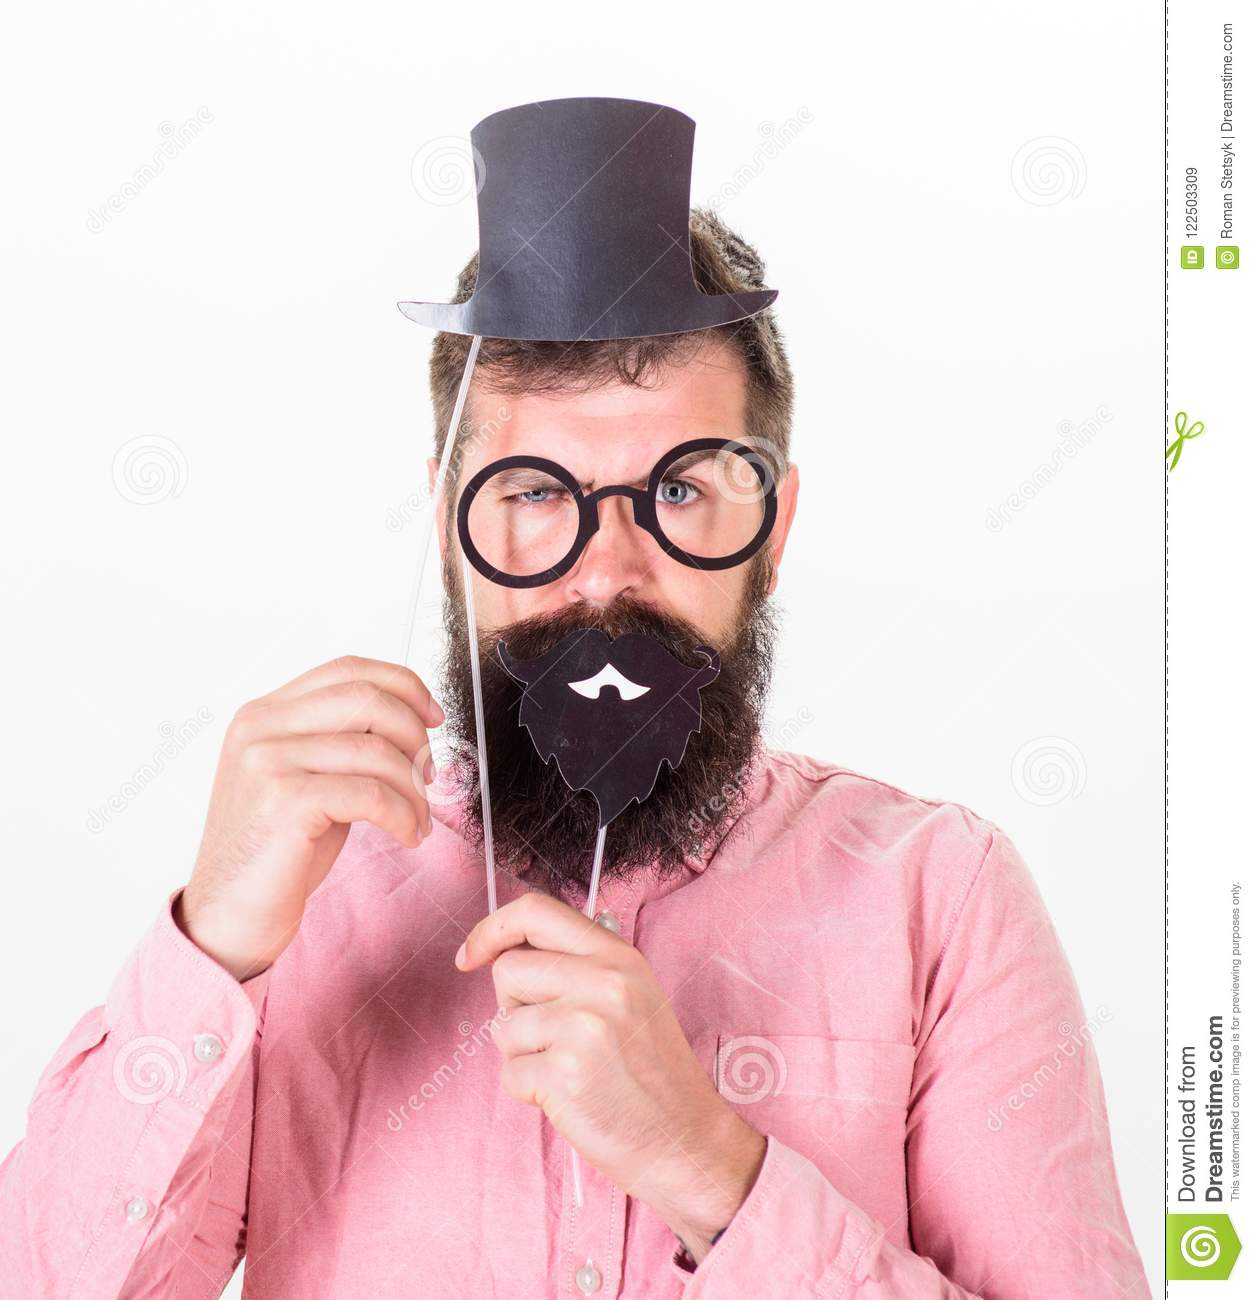 563939f8 Dressing well makes you seem more intelligent. Man bearded hipster  cardboard top hat and eyeglasses to look smarter white background.  Guaranteed ways appear ...